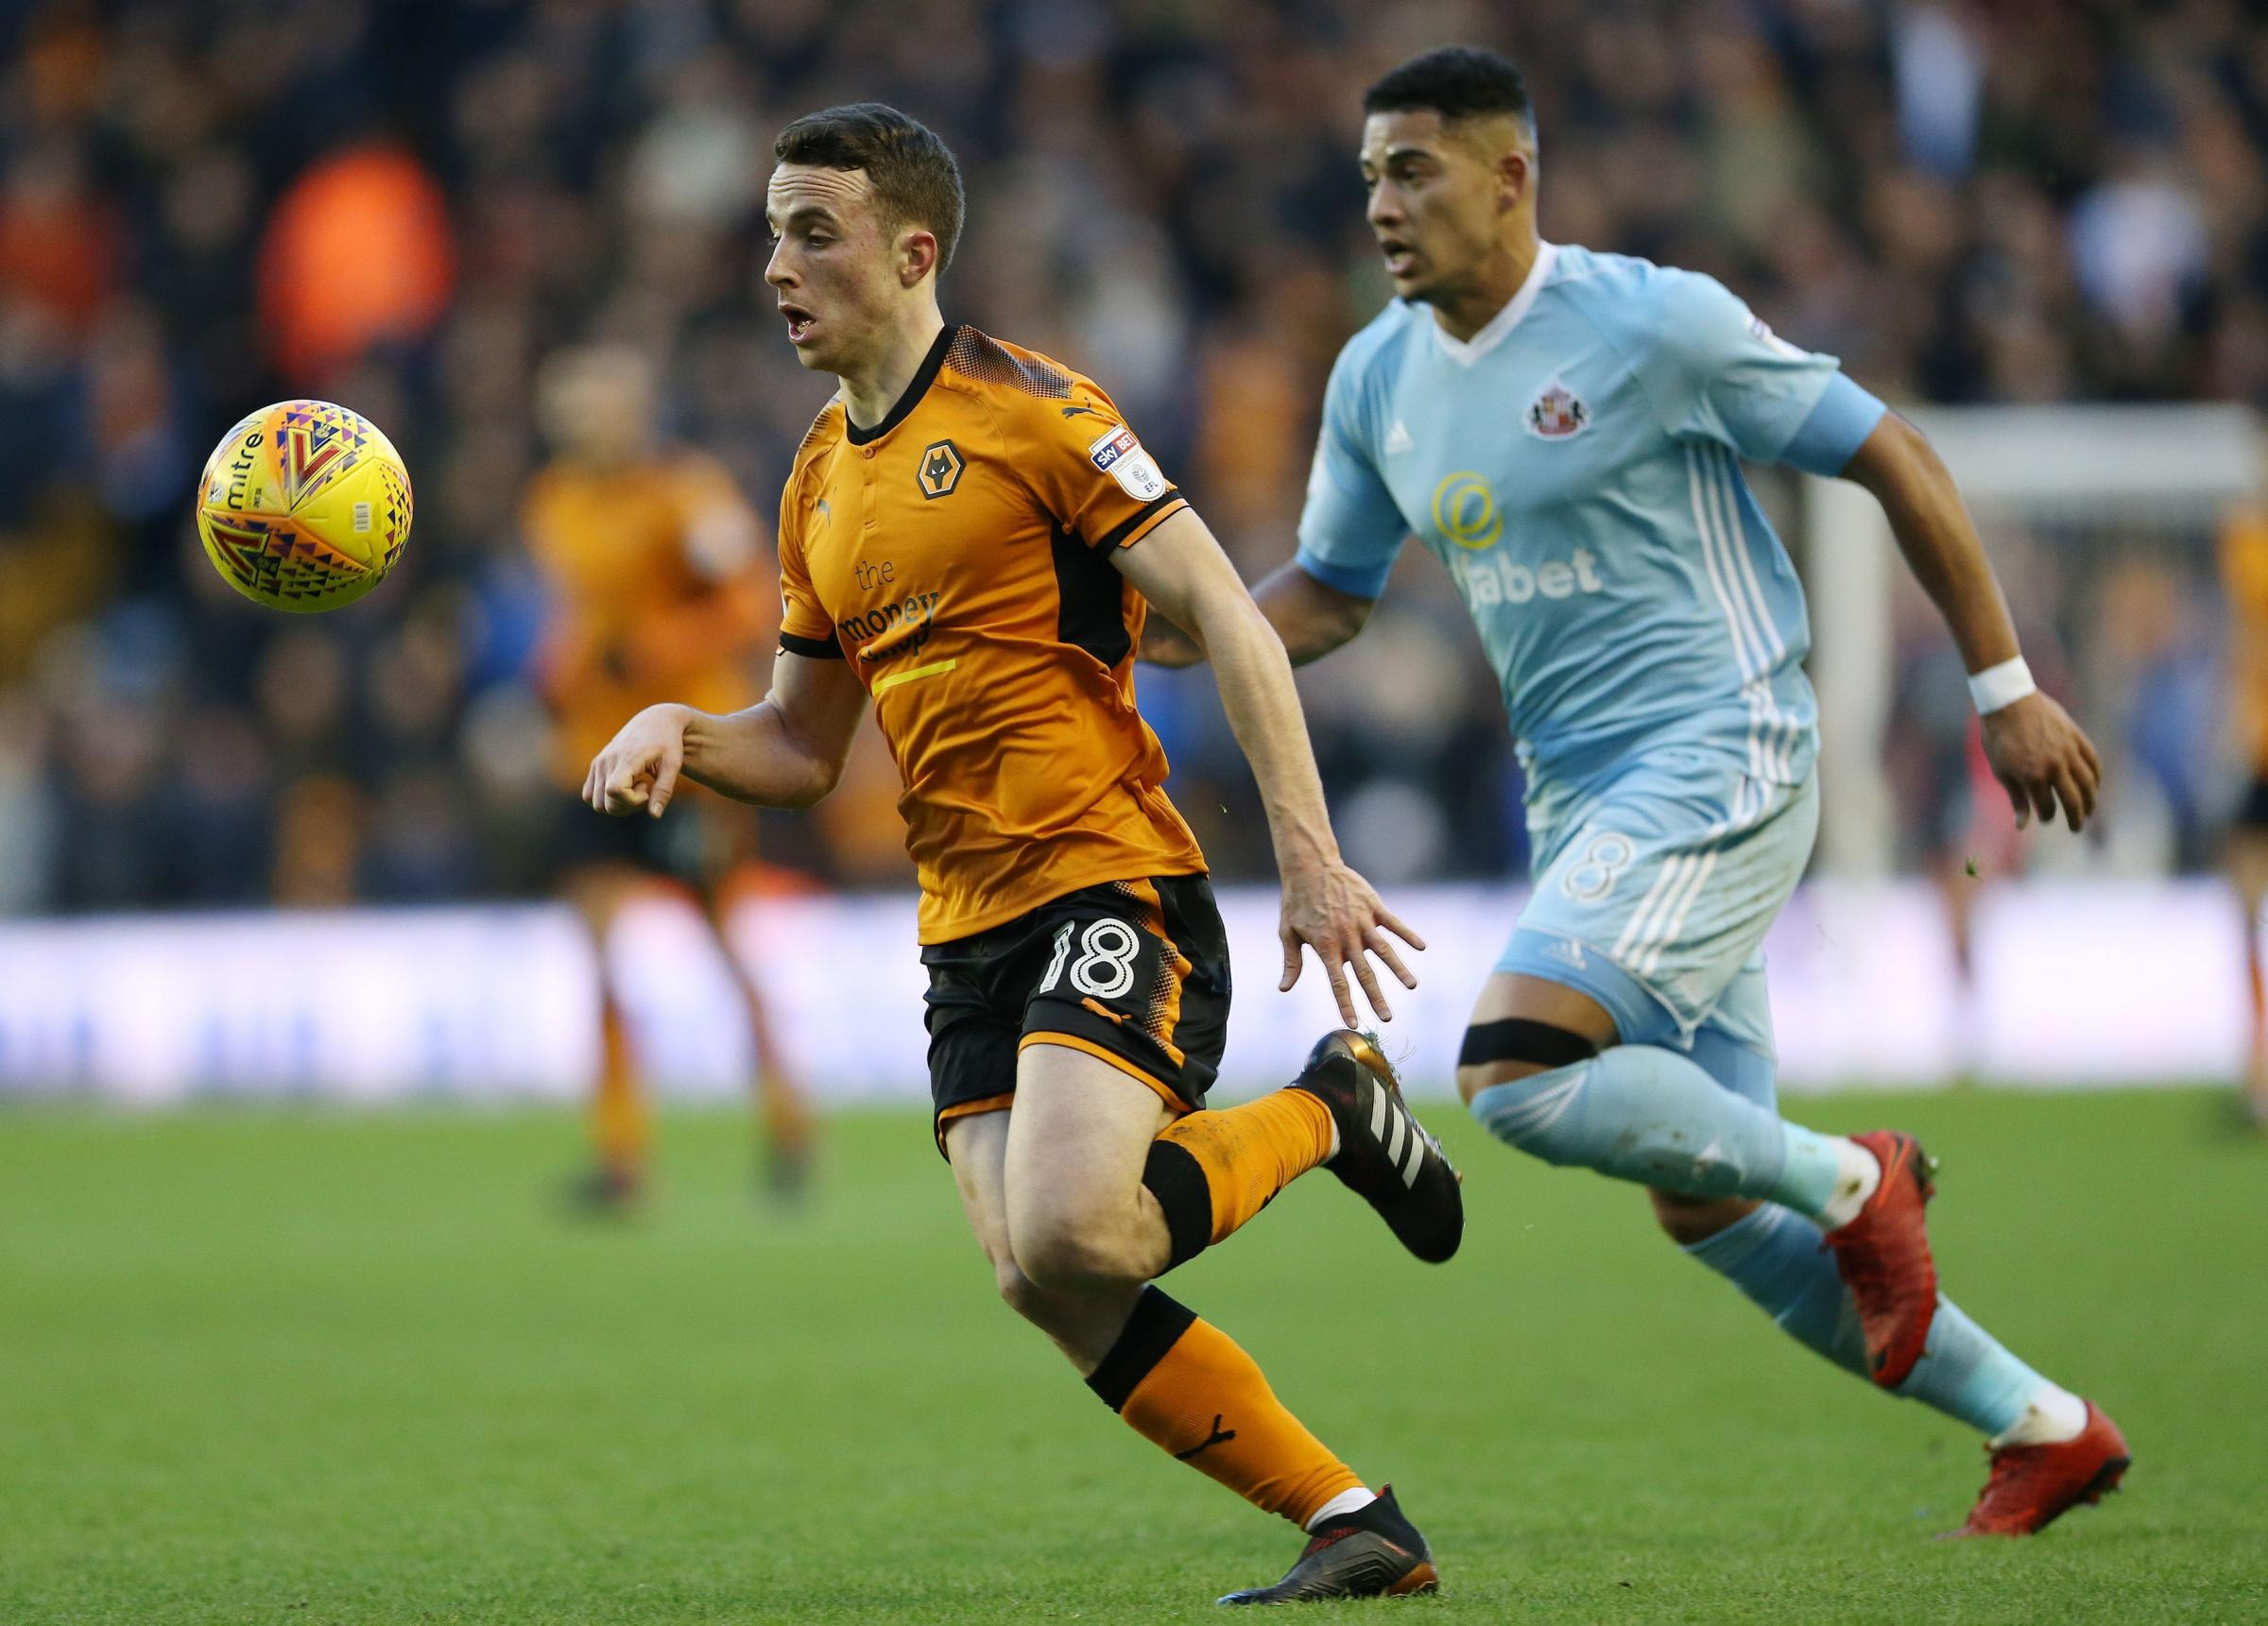 BATTLE: Ty Browning competes with Diogo for the ball at Molineux